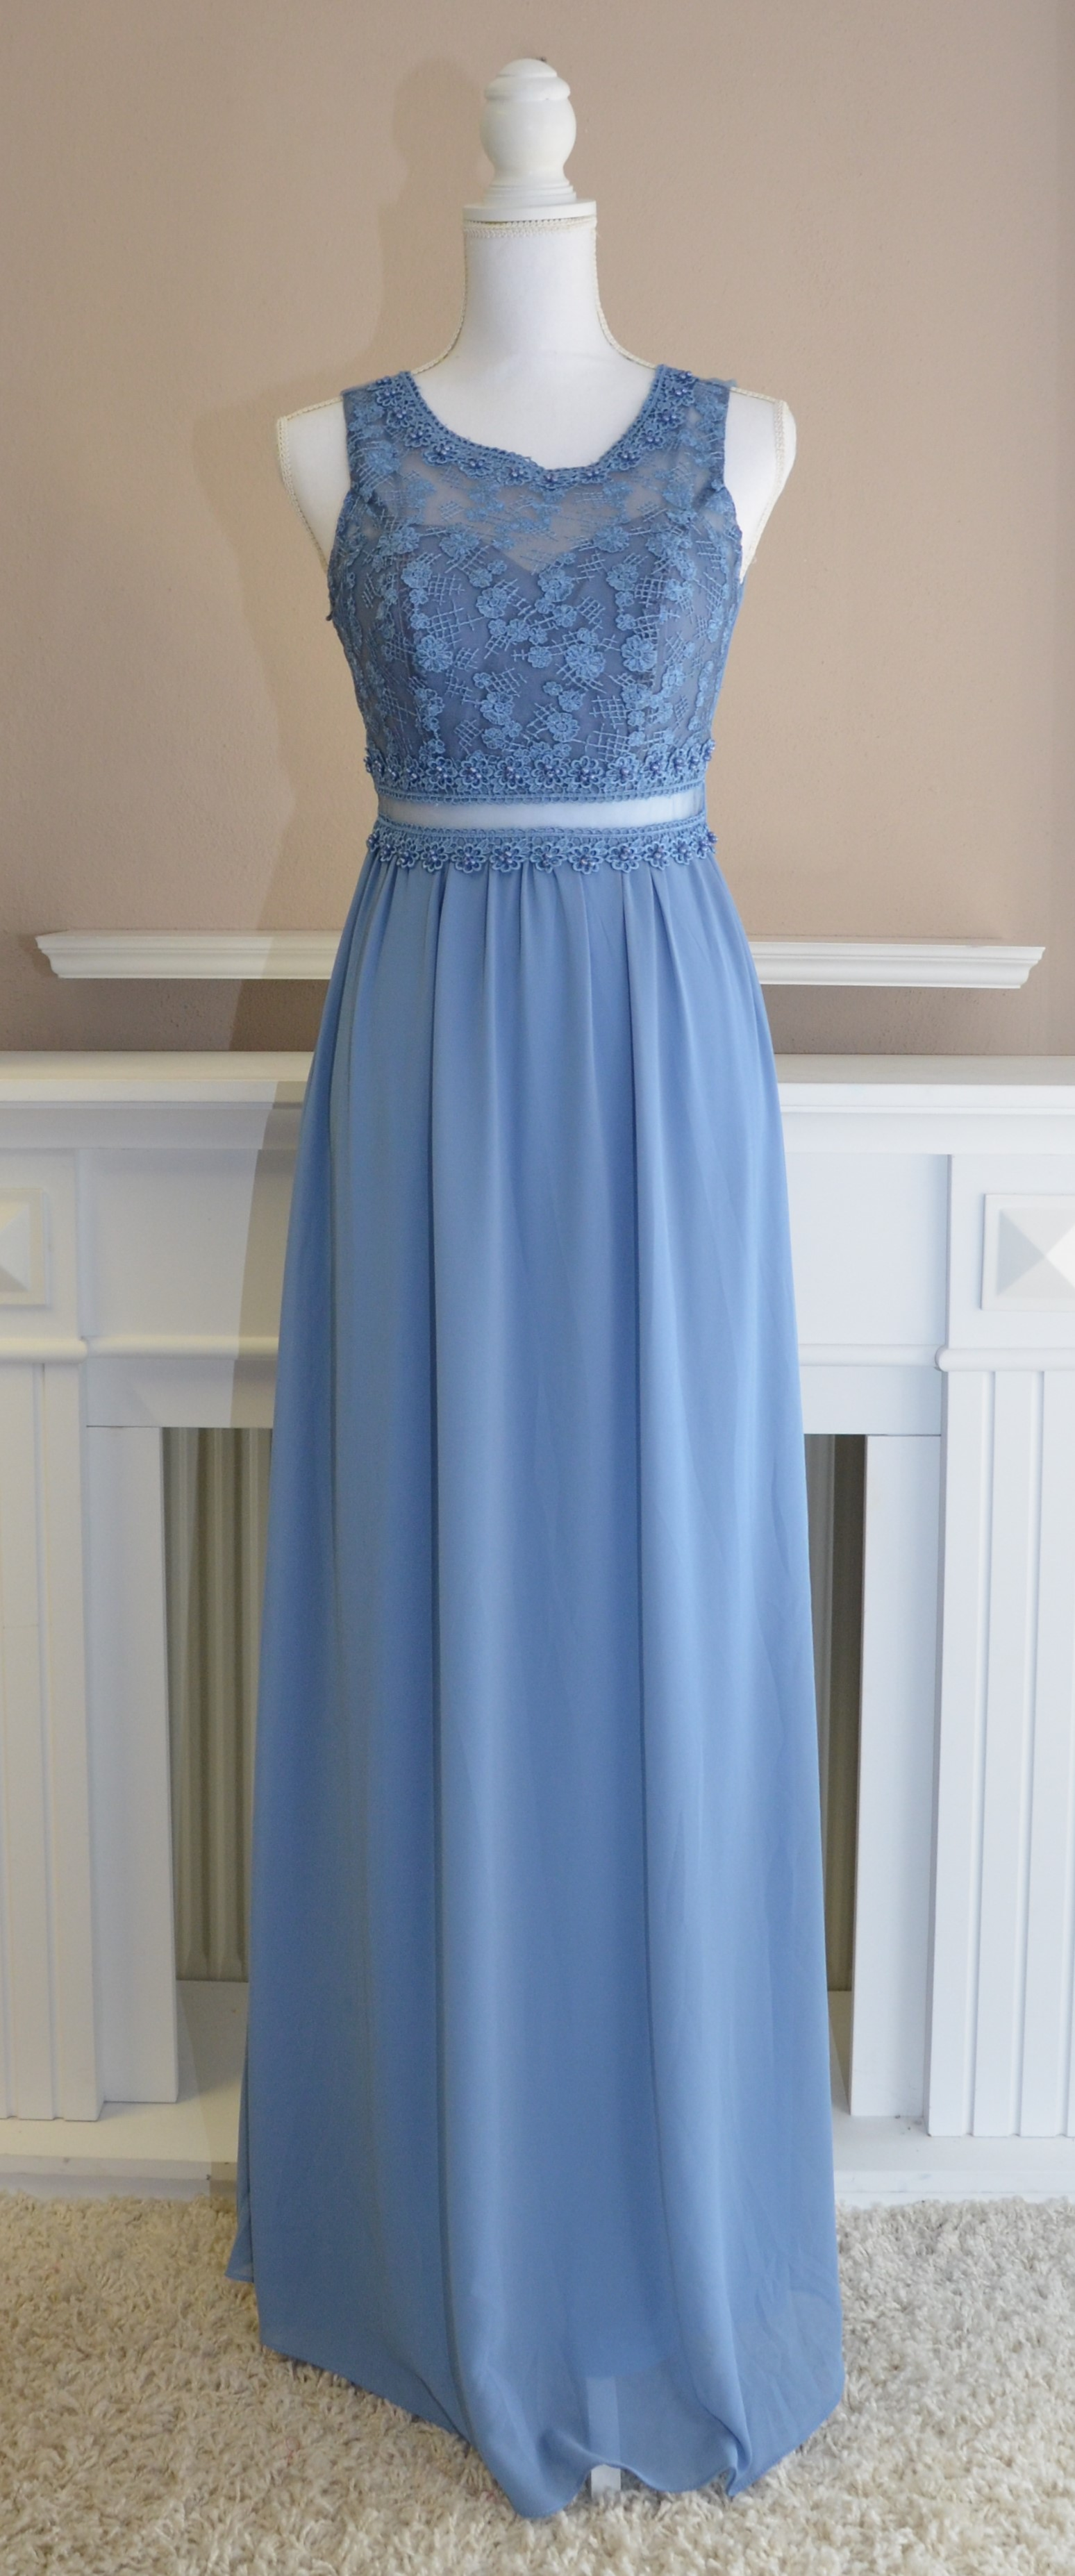 Abendkleid in Taubenblau